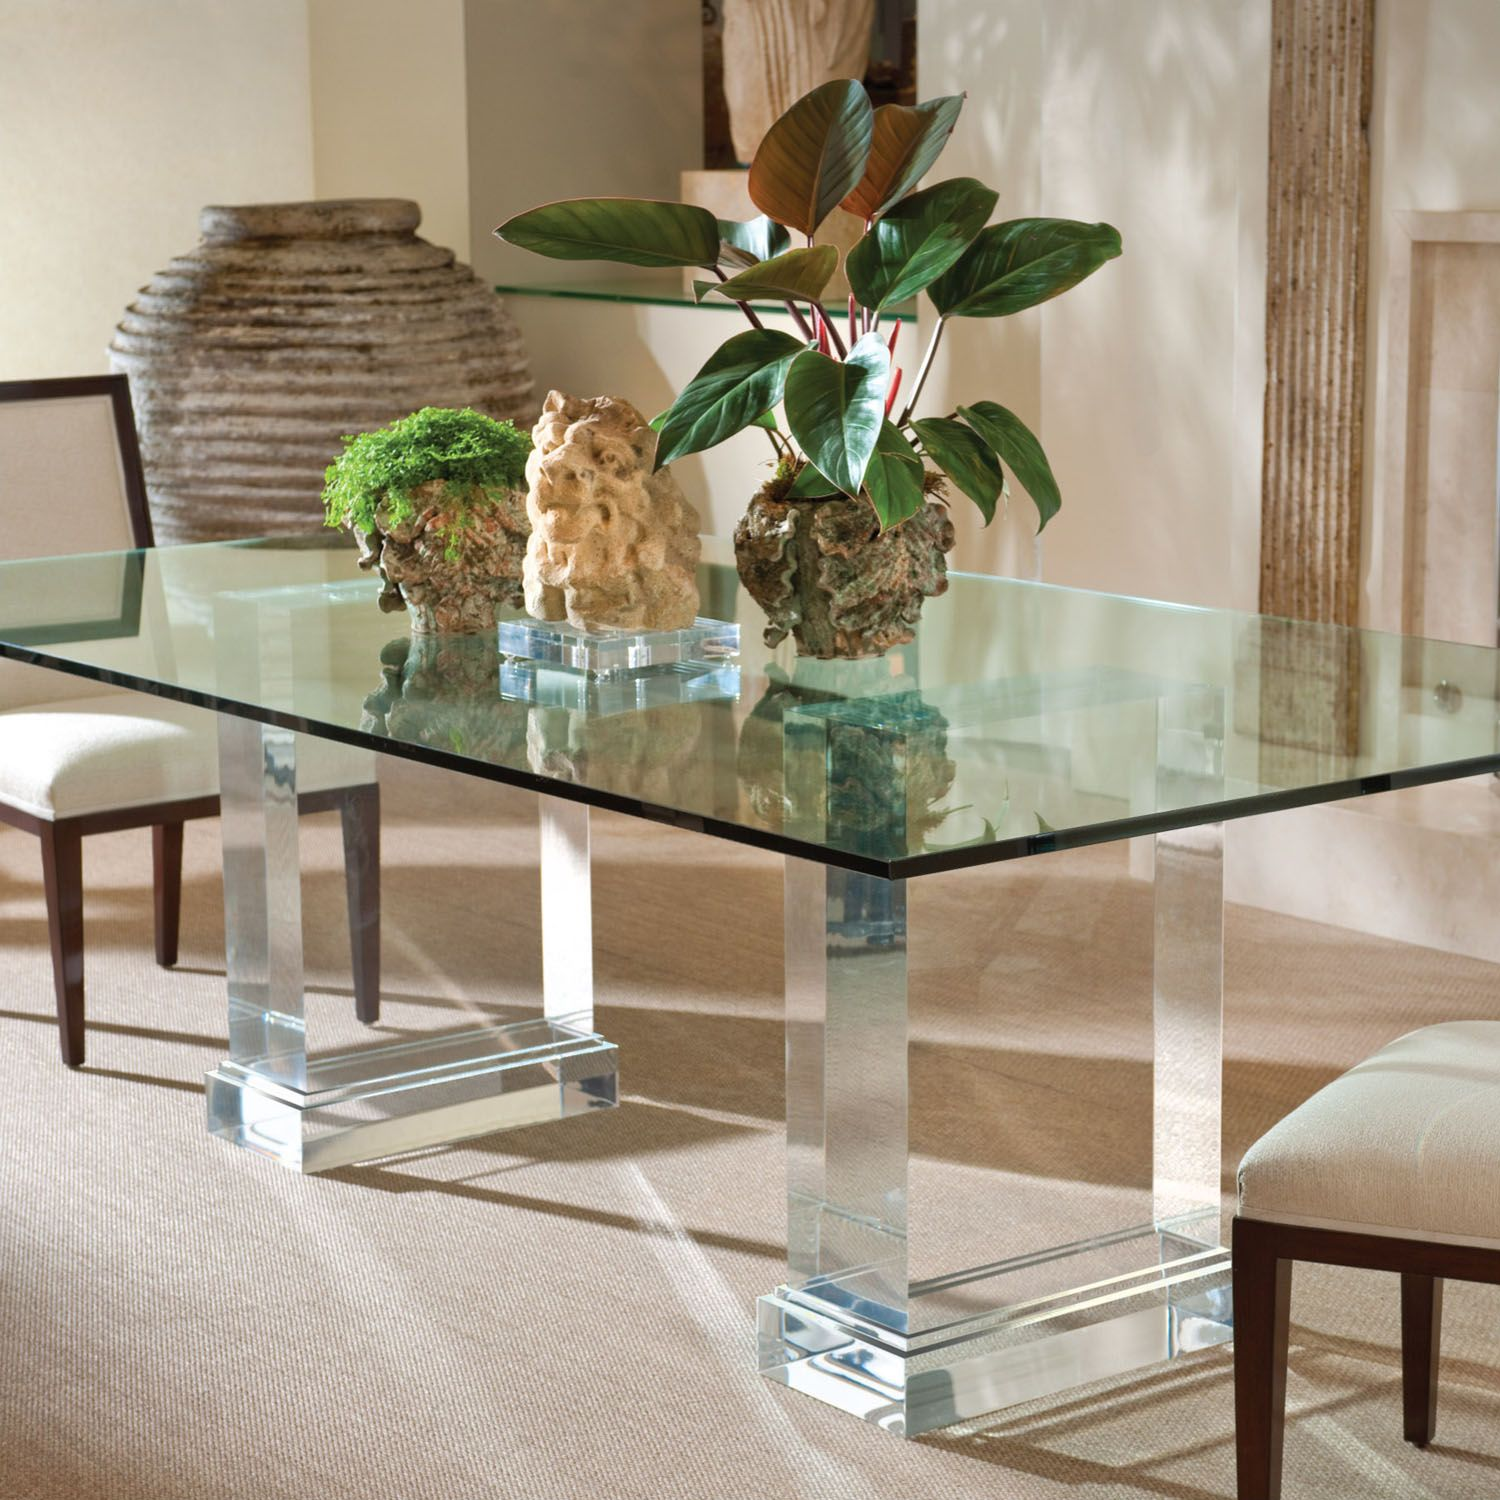 Allan knightacrylic dining and game tables apollo dining table allan knightacrylic dining and game tables apollo dining table pedestal dining pinterest pedestal table base tables and dining dzzzfo